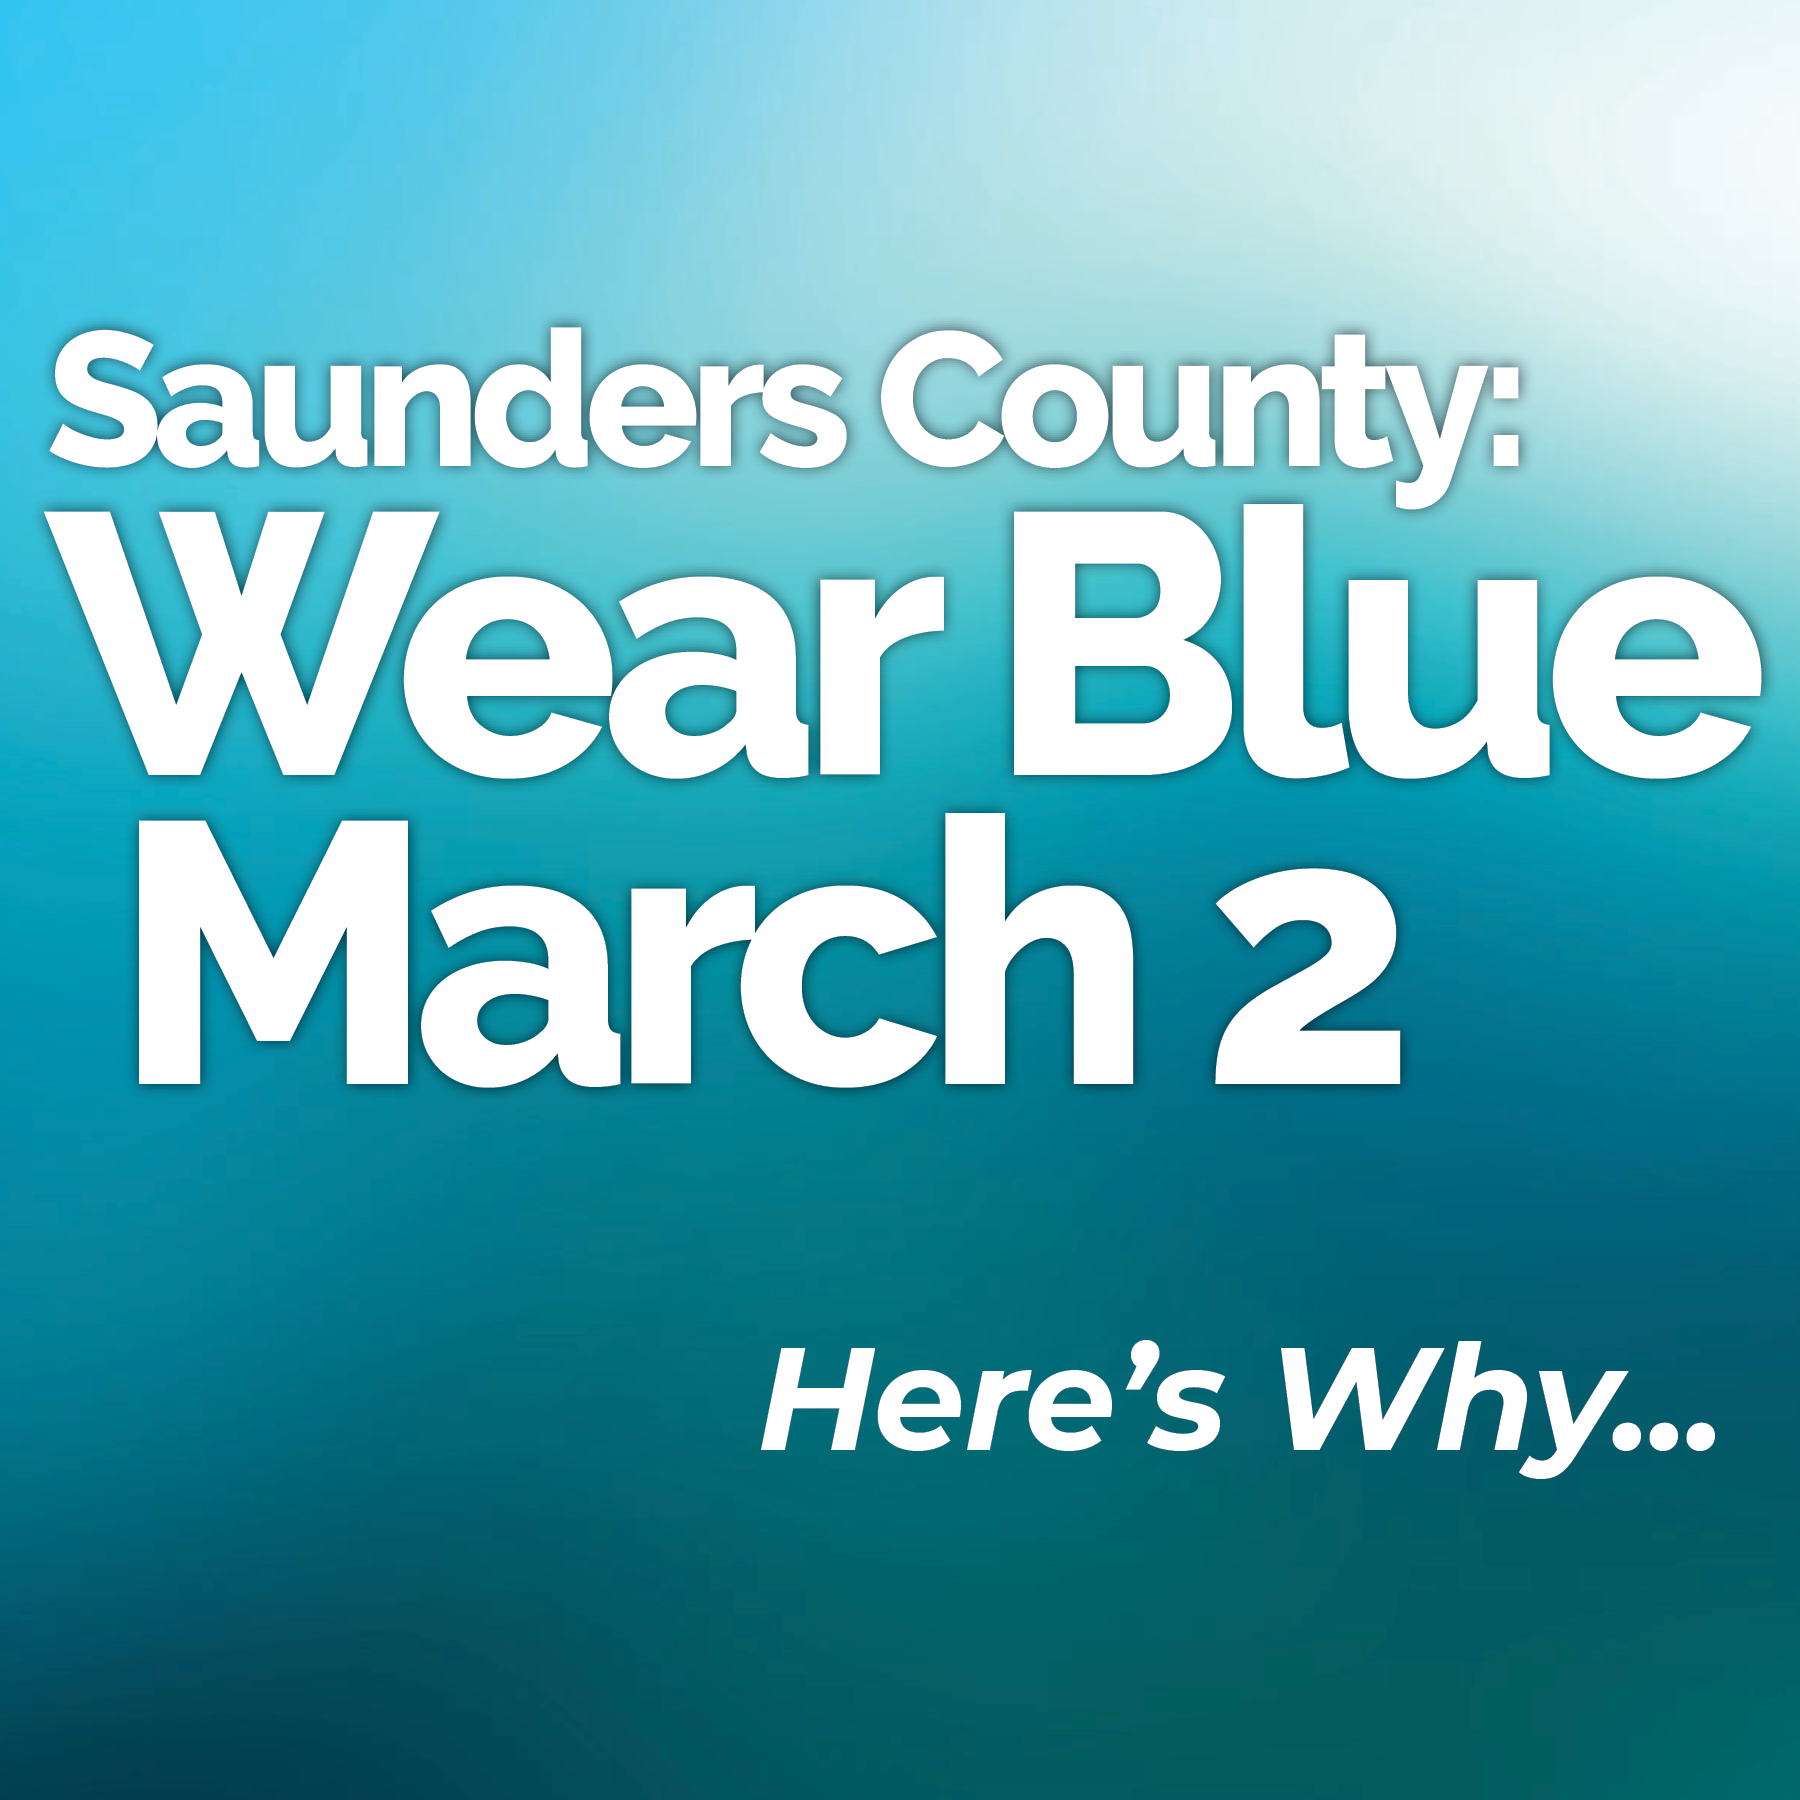 Saunders County: Wear Blue on March 2!